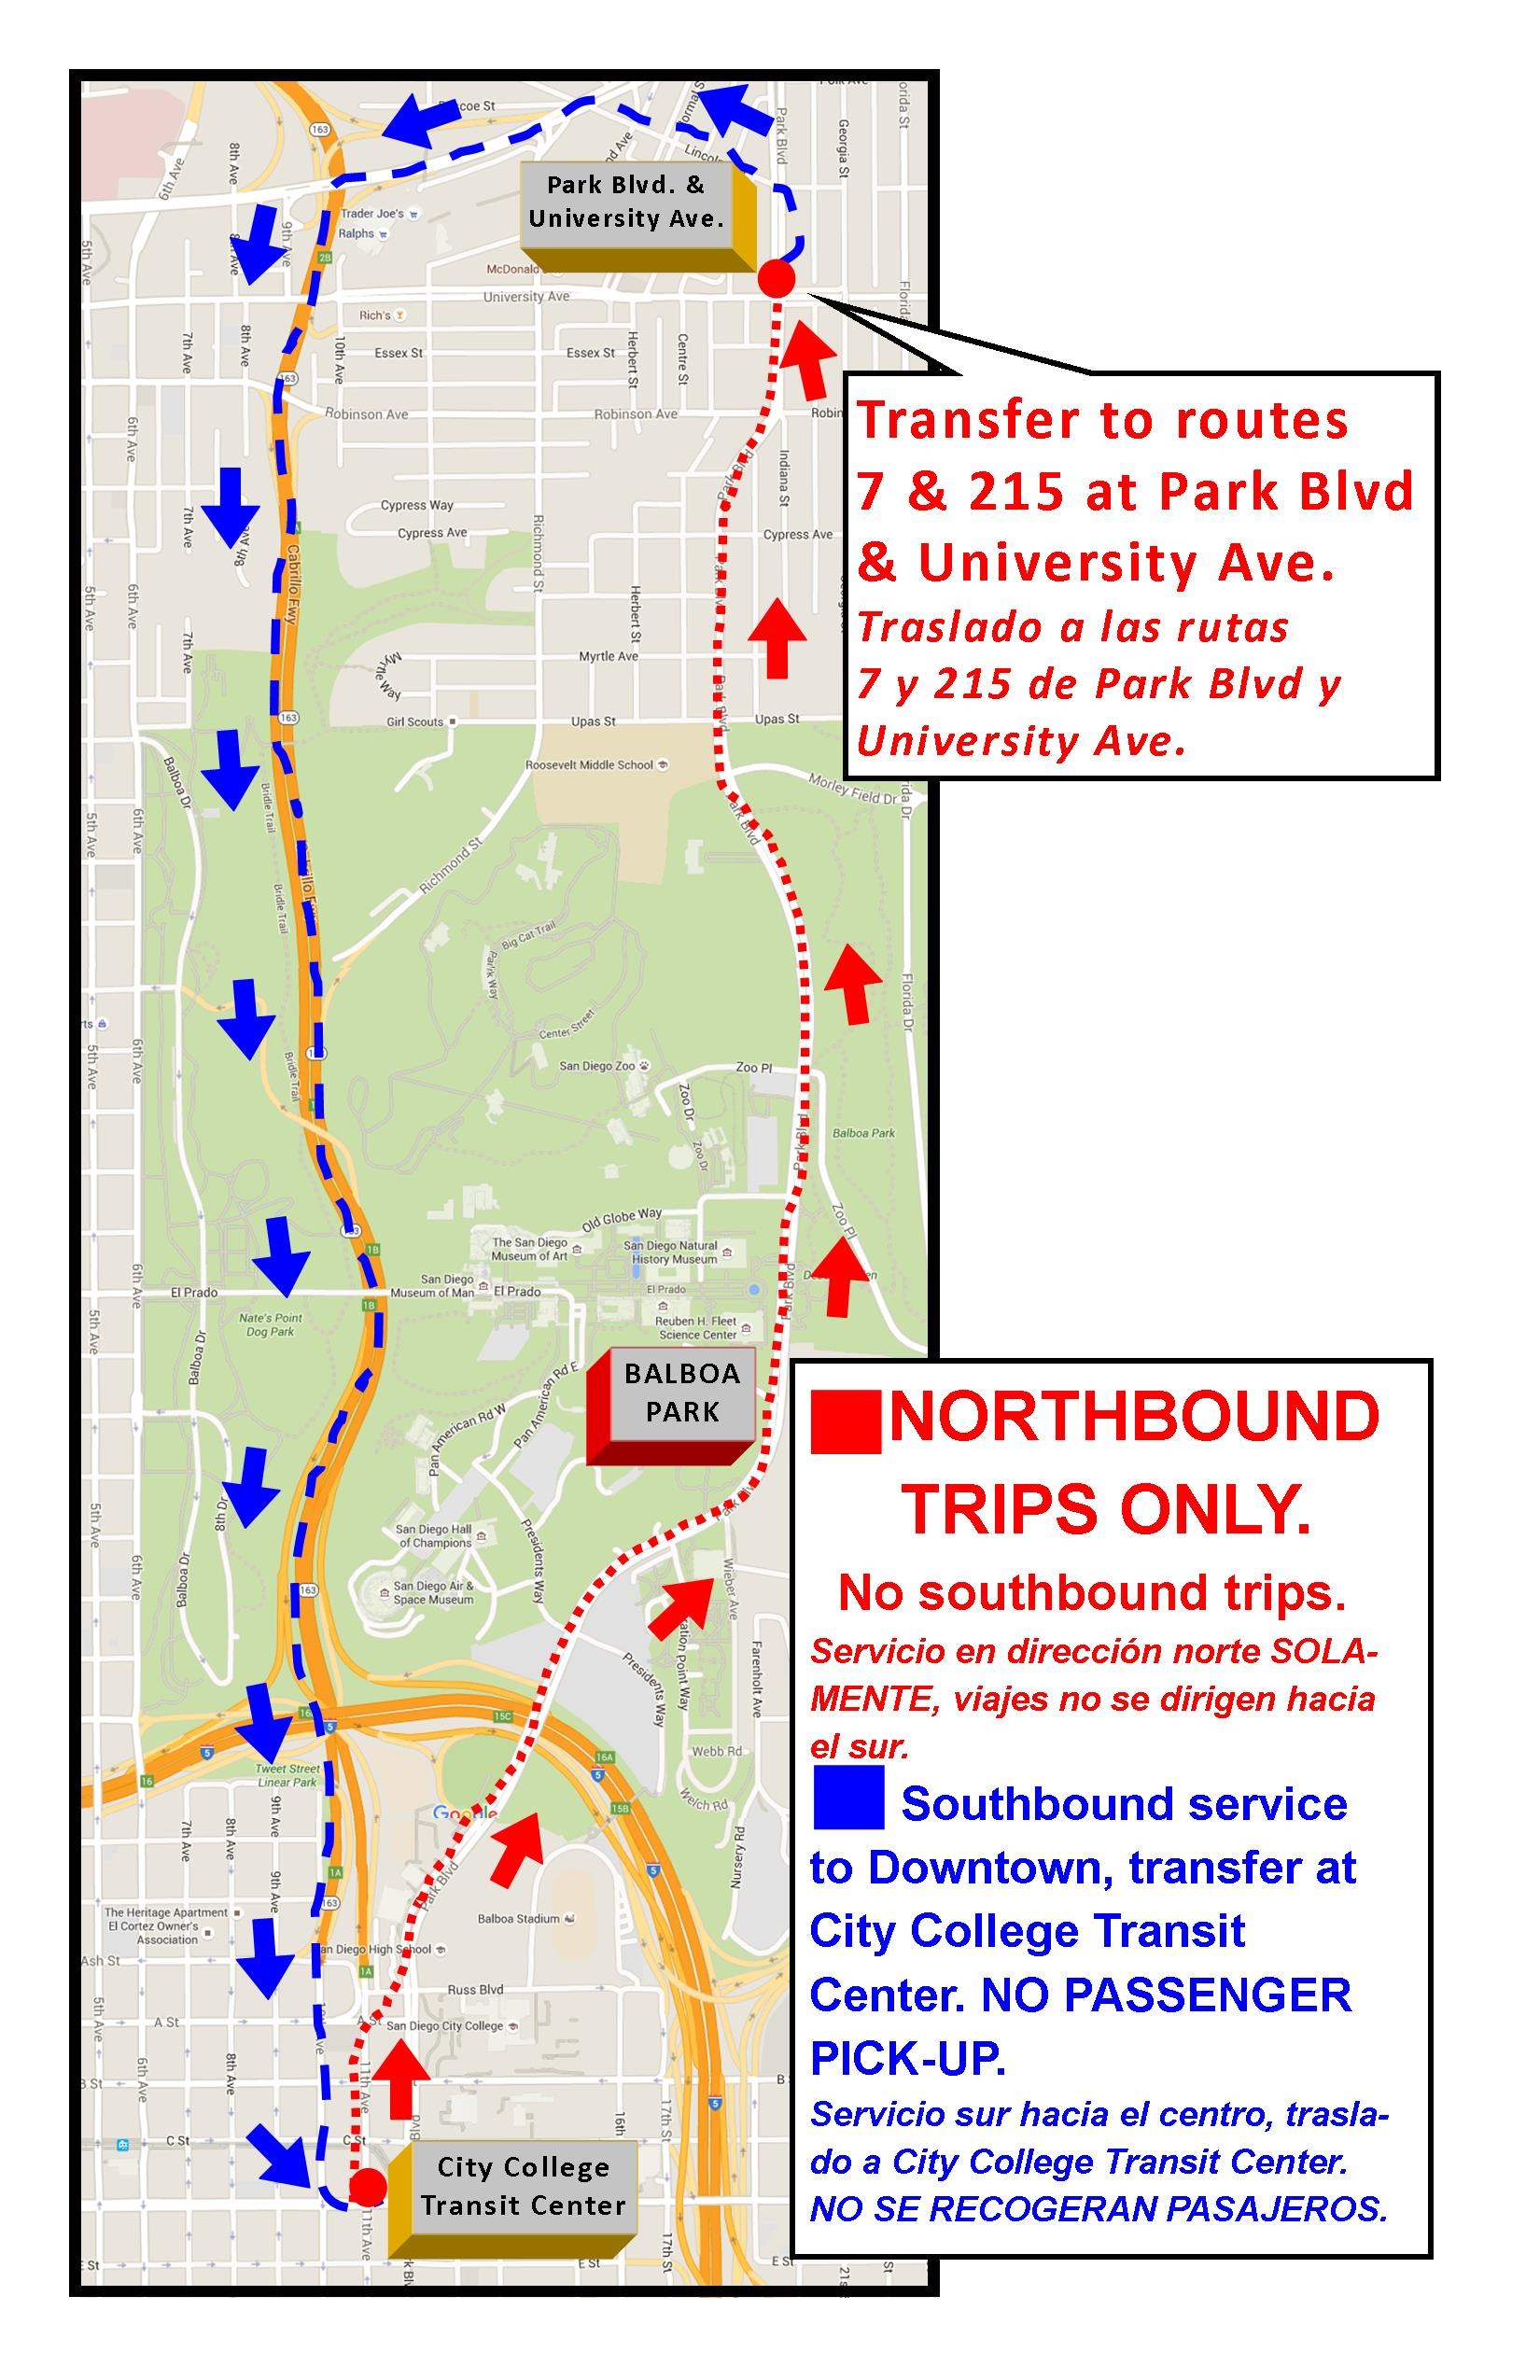 There Will Be Mts Shuttle Service Traveling Northbound Only On Park Blvd Between City College And University Ave